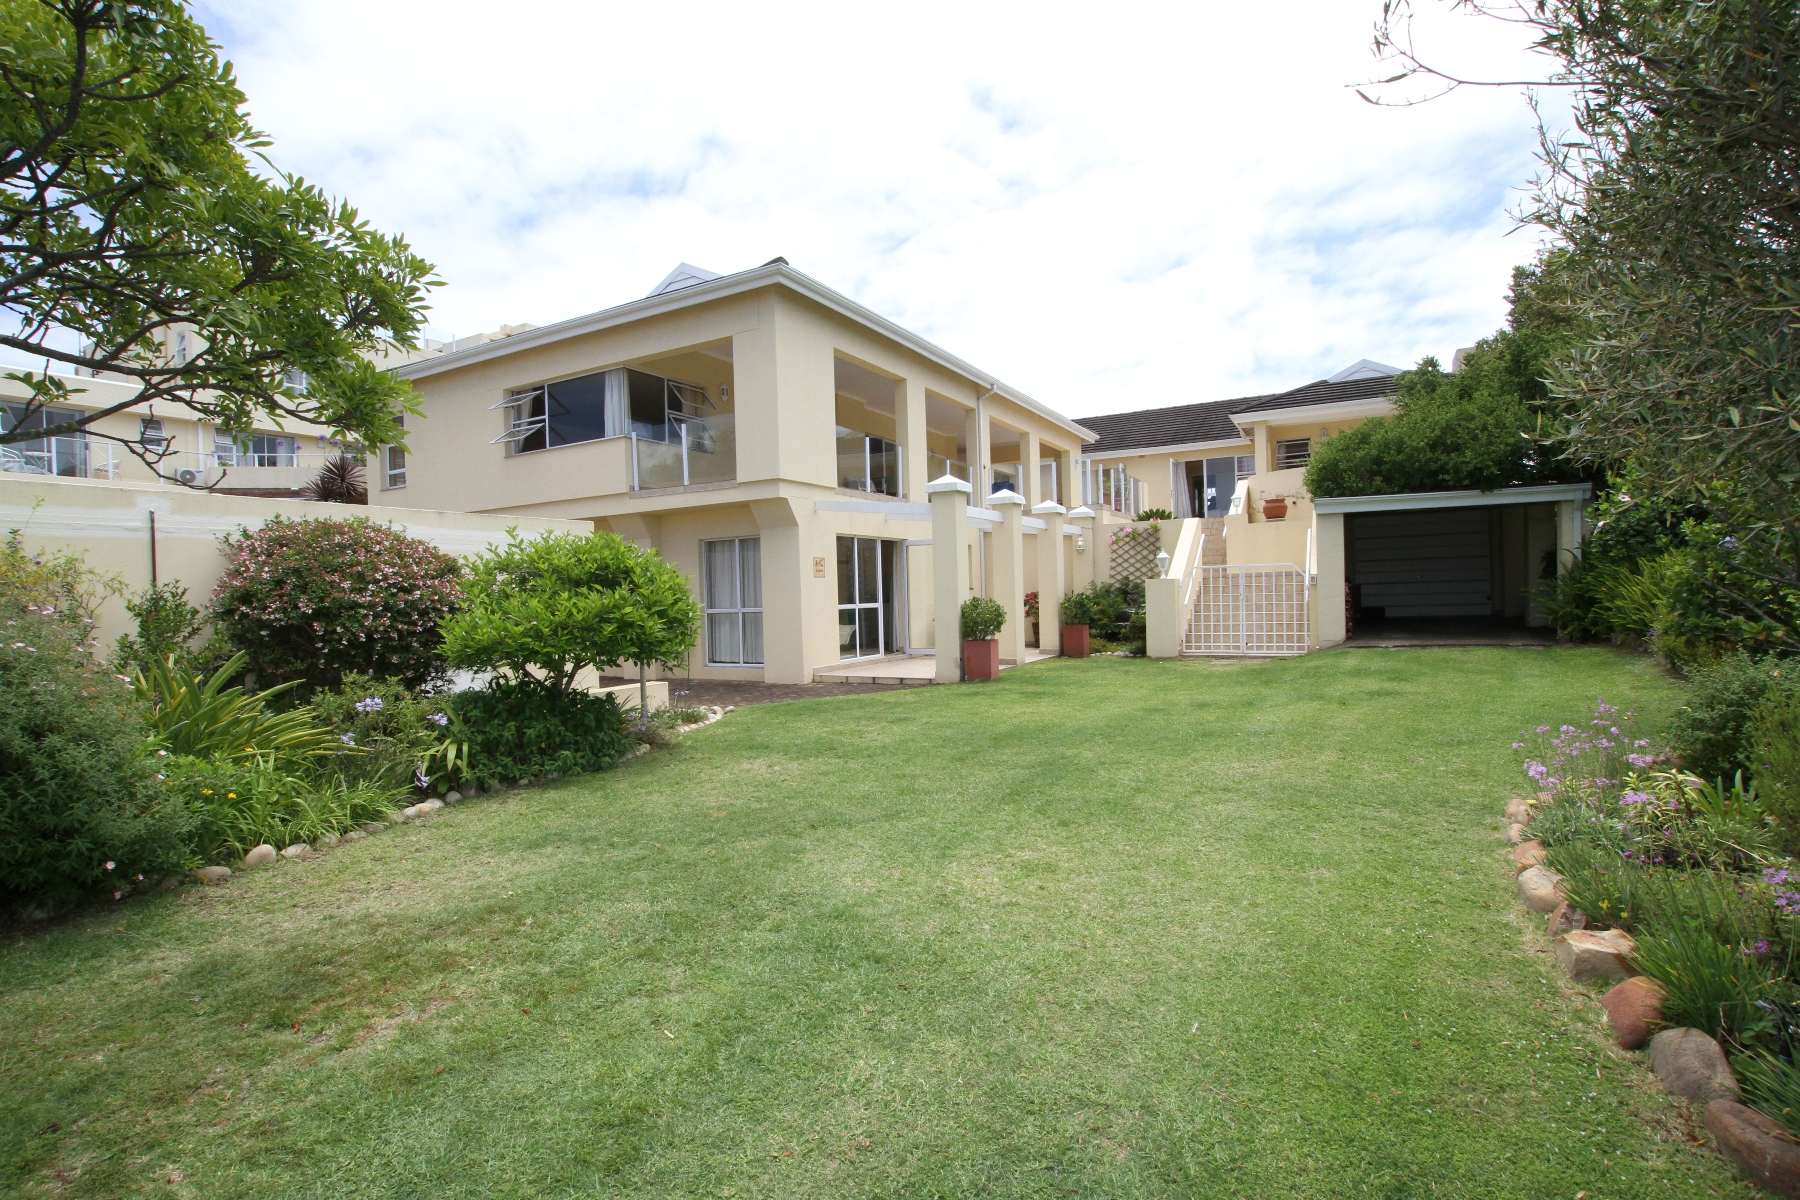 Single Family Home for Sale at Close to the beach and lagoon Plettenberg Bay, Western Cape 6600 South Africa